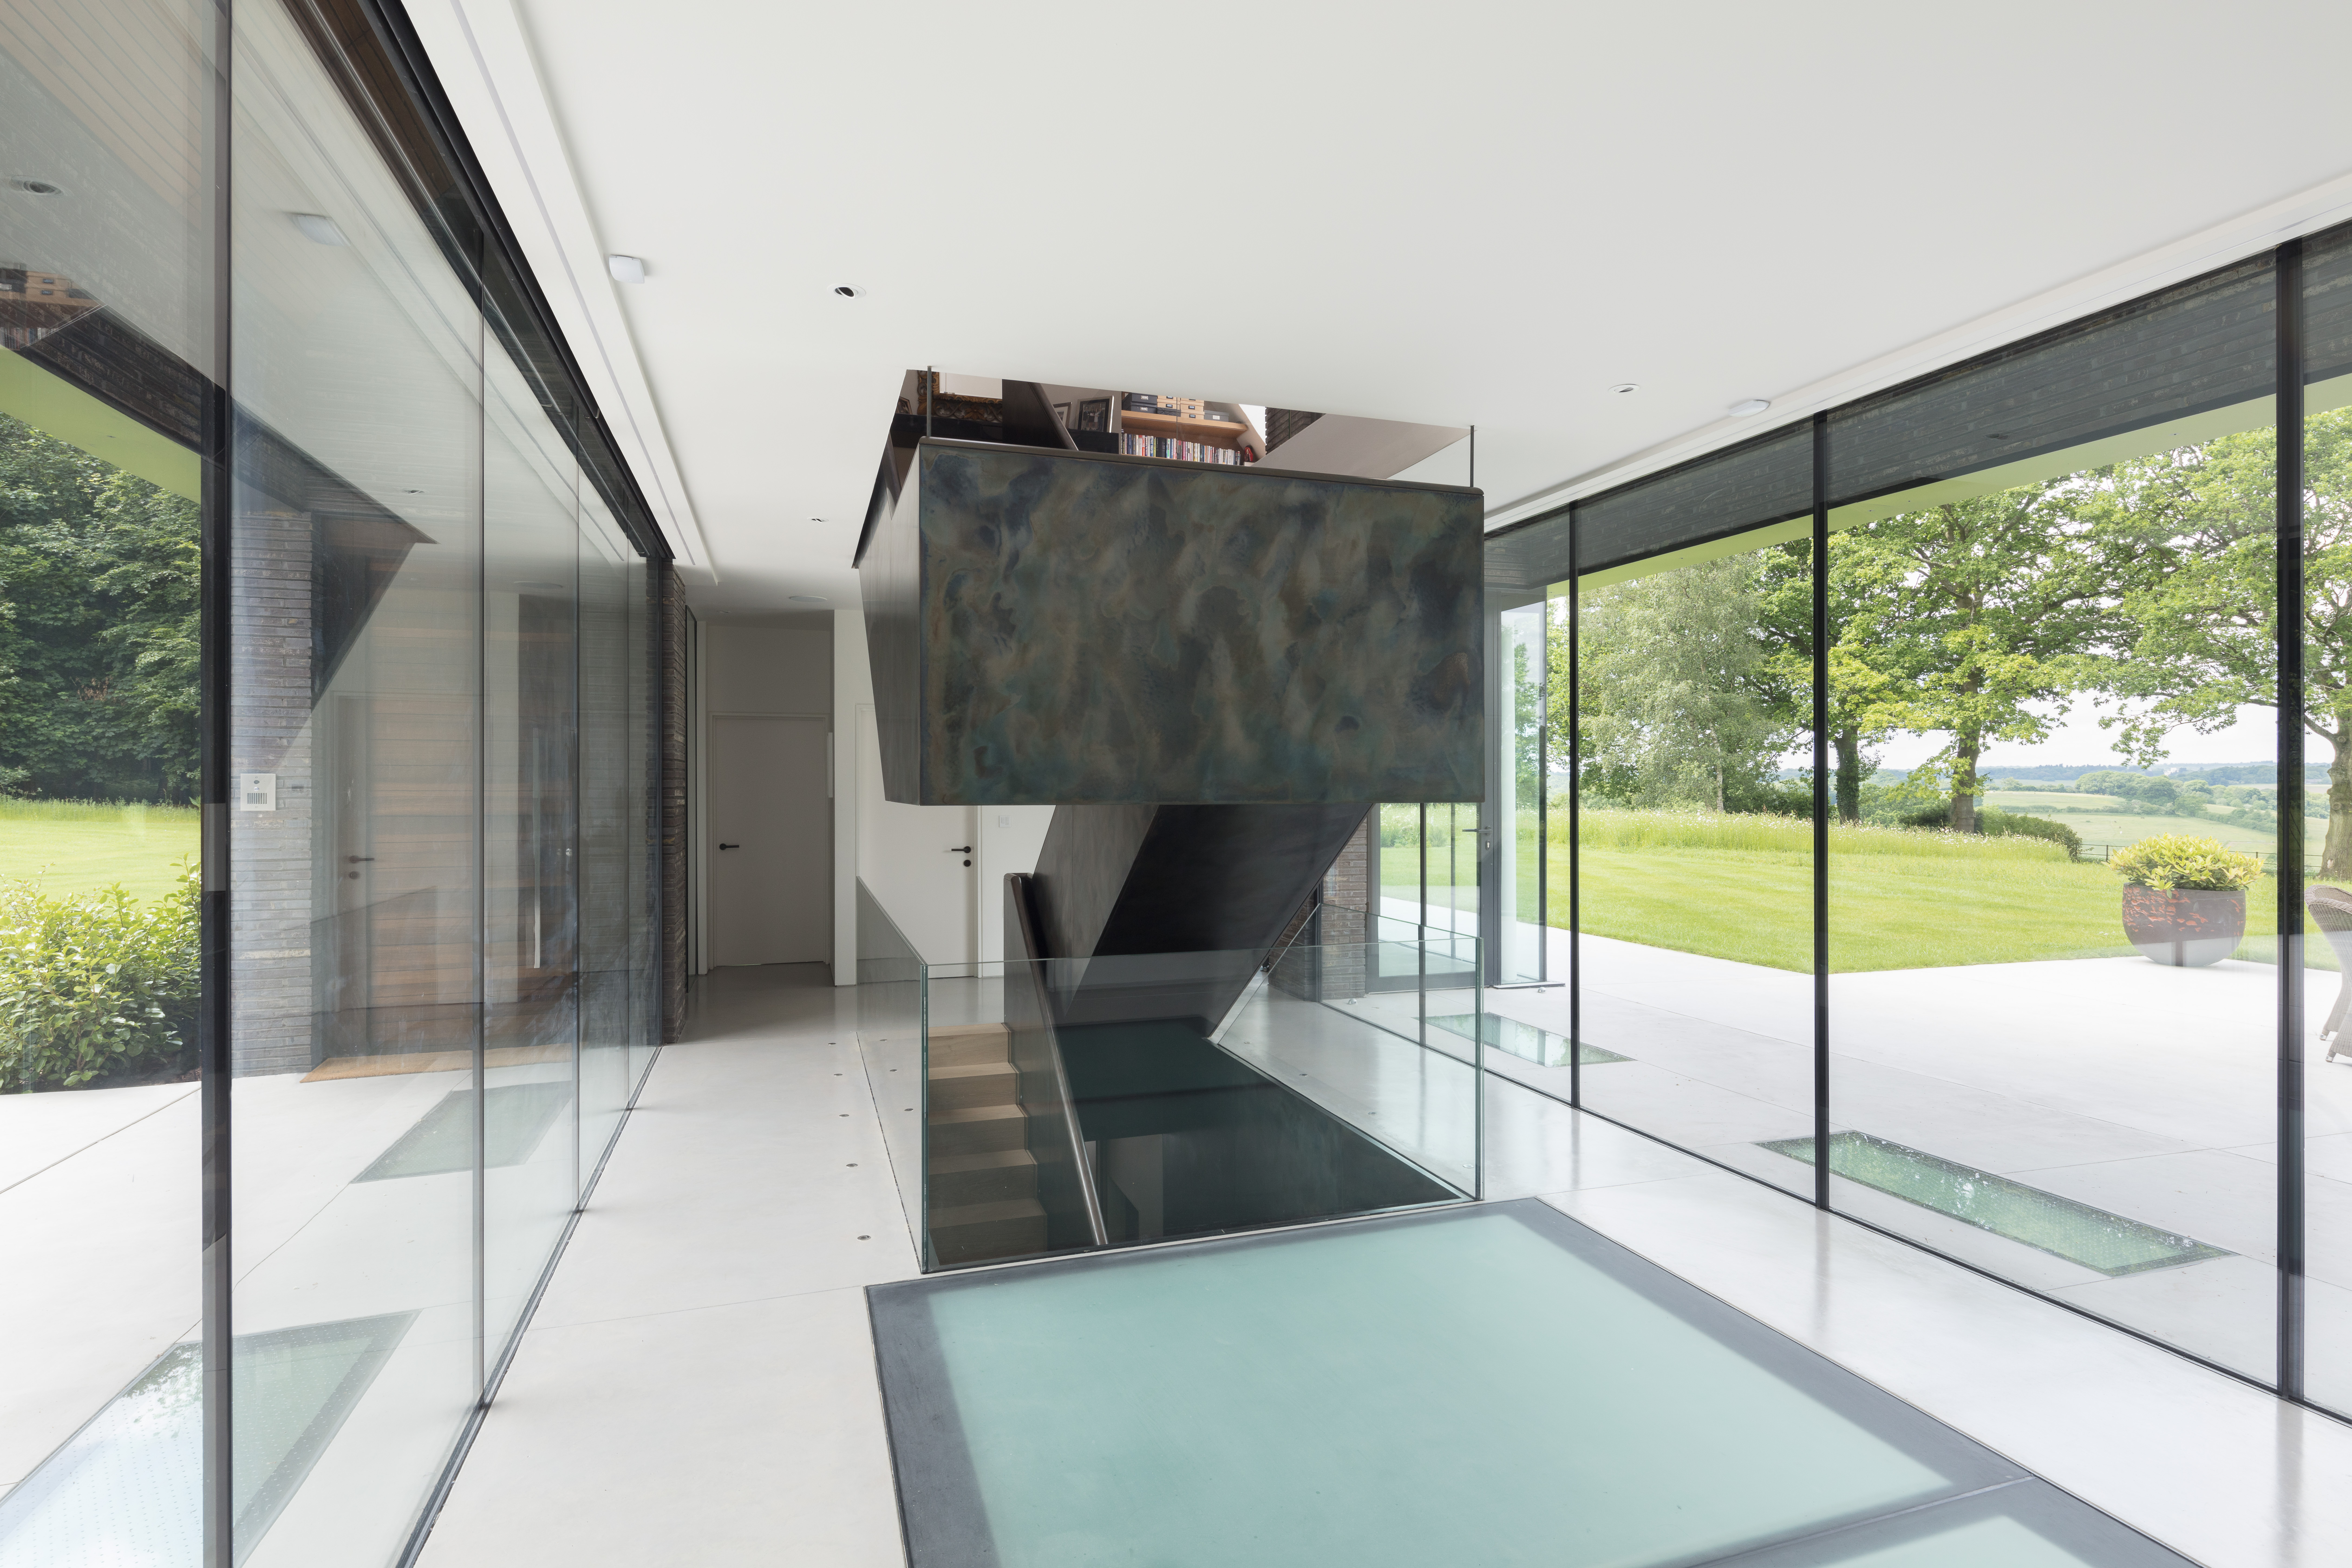 Sandblasted Glass Walk on Floor